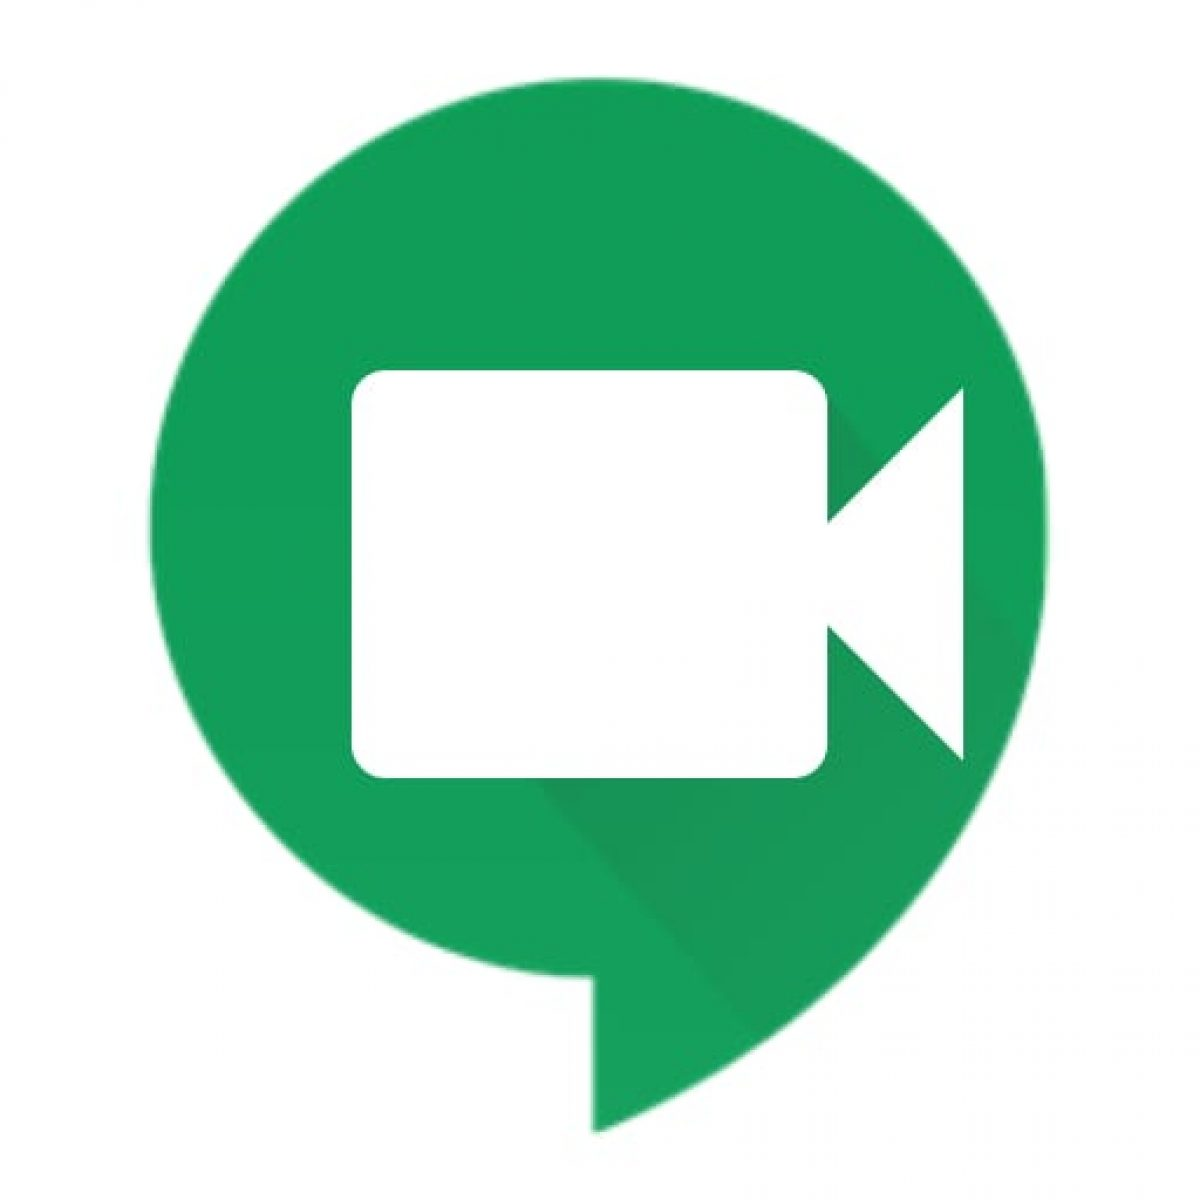 Google Hangouts Gets An Alter Ego With The Launch Of GSuite's Meet ...